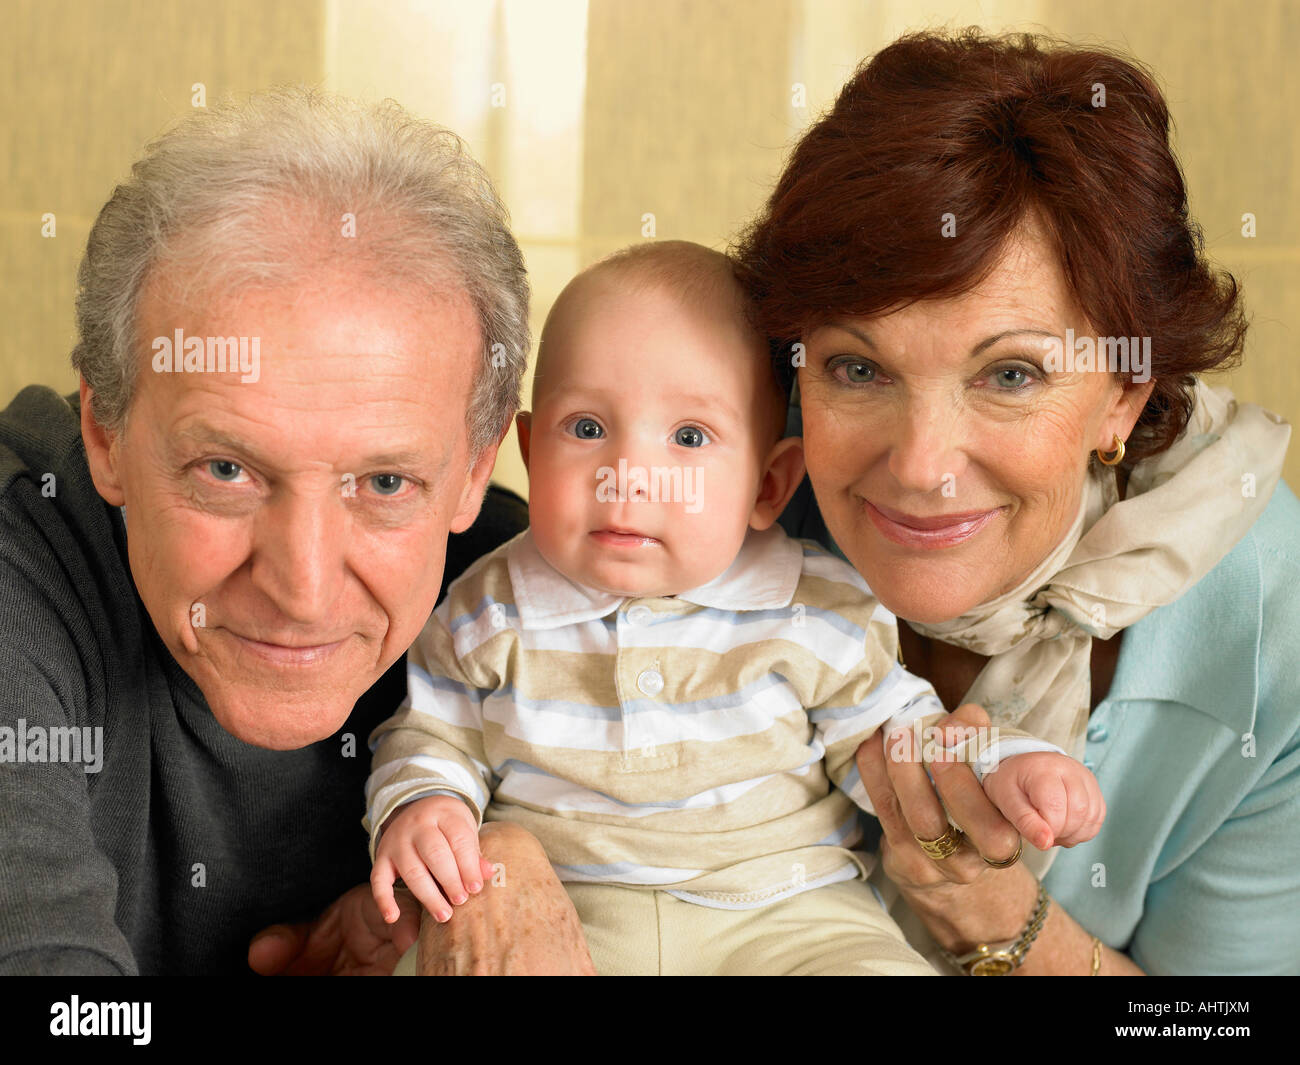 Senior grandparents with baby grandson (1-3 months) smiling, portrait - Stock Image